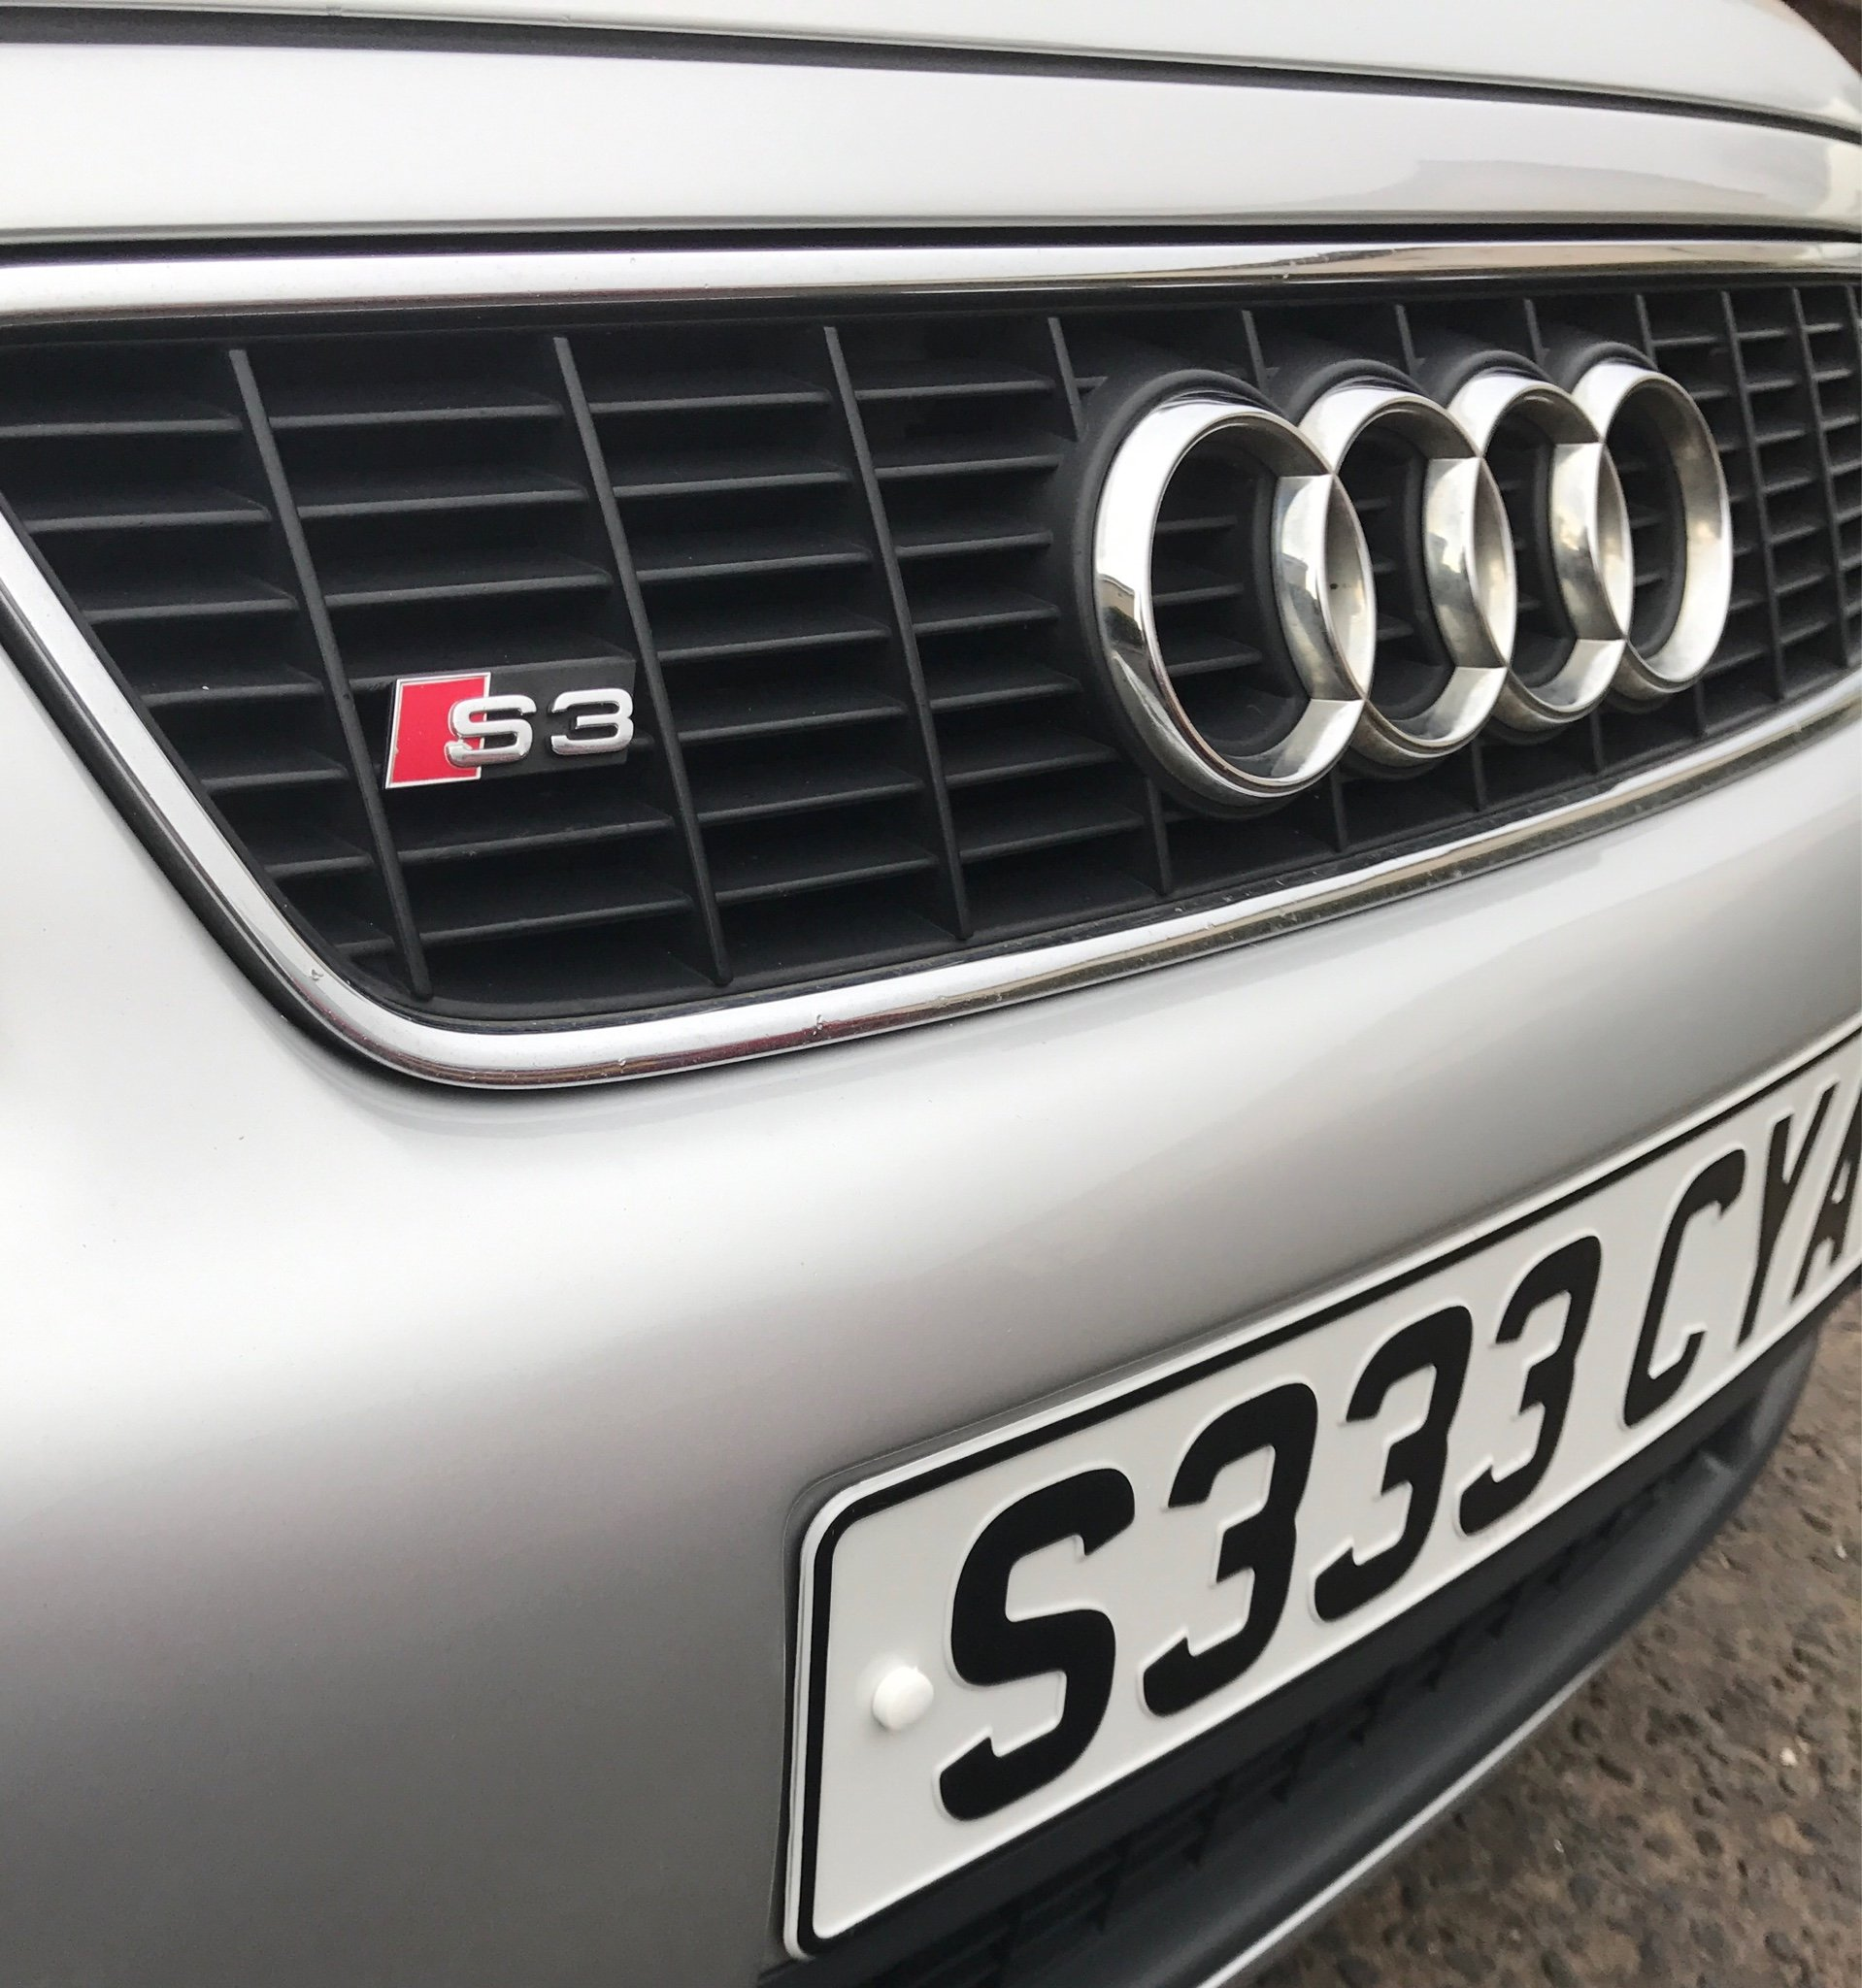 How to remove the S3 emblem badge front the front grill